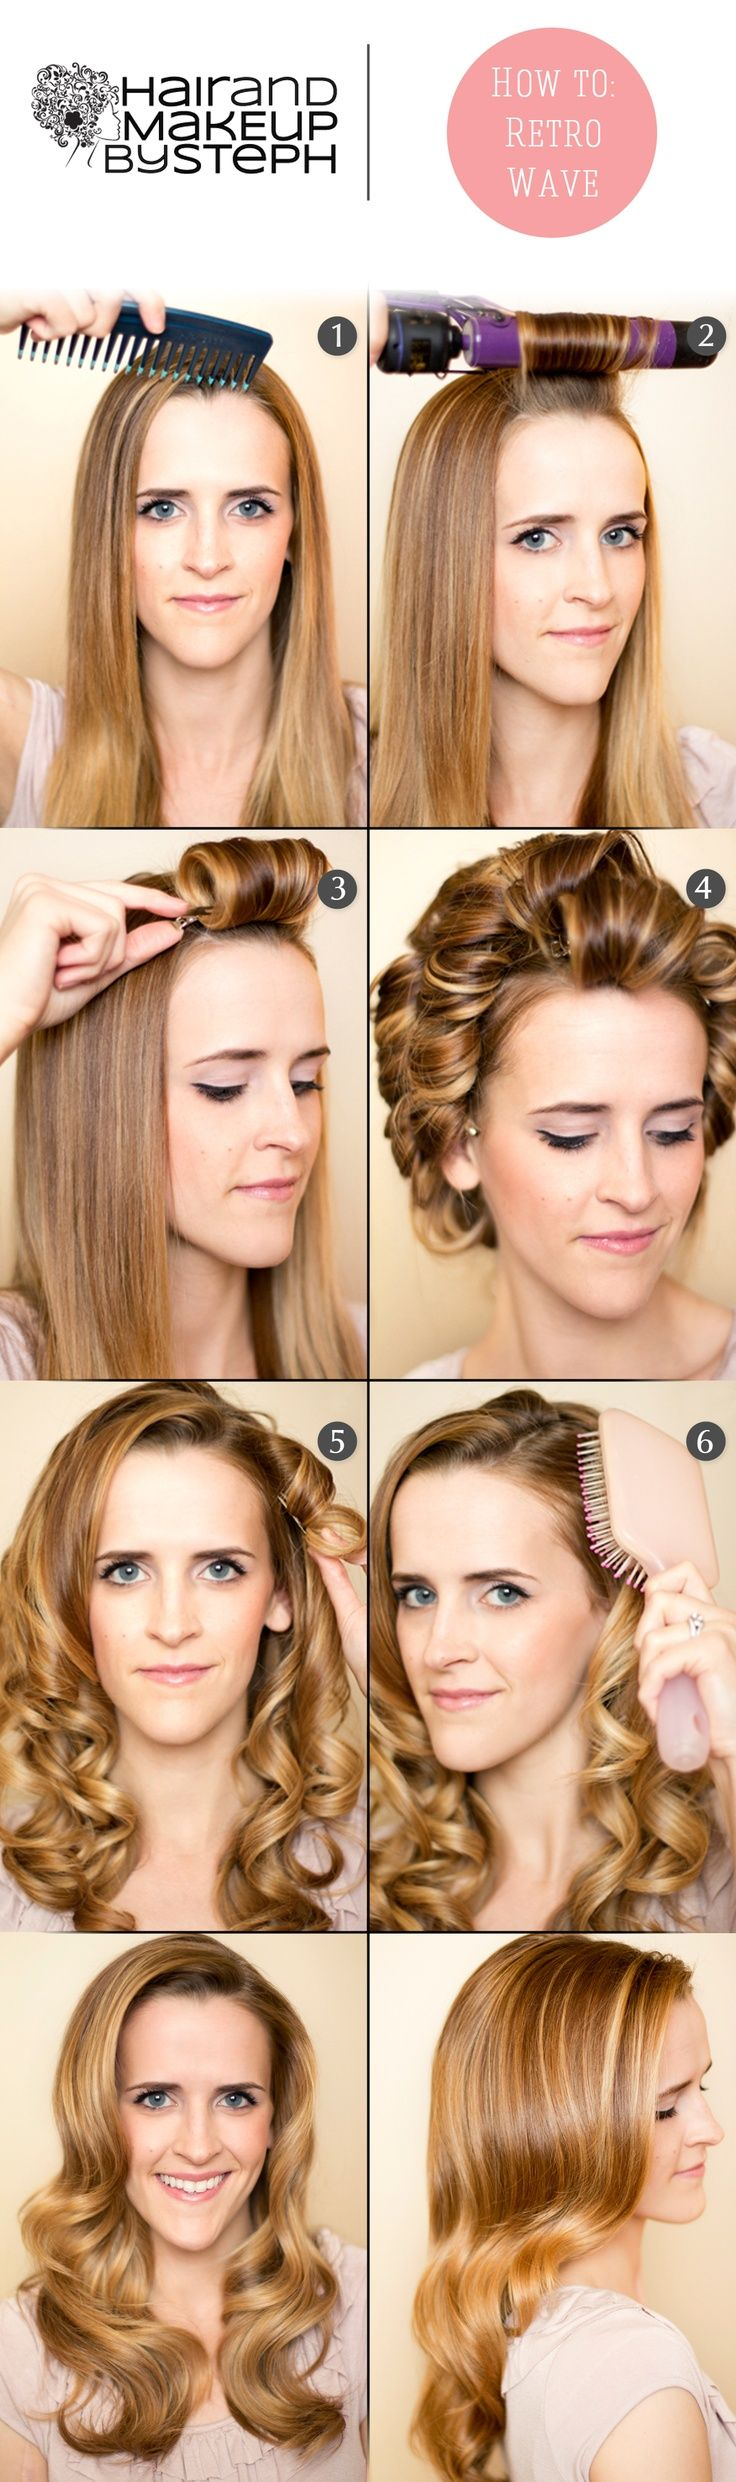 20 Stylish Retro Wavy Hairstyle Tutorials And Hair Looks Pretty Designs Wavy Hairstyles Tutorial Retro Curls Curly Hair Styles